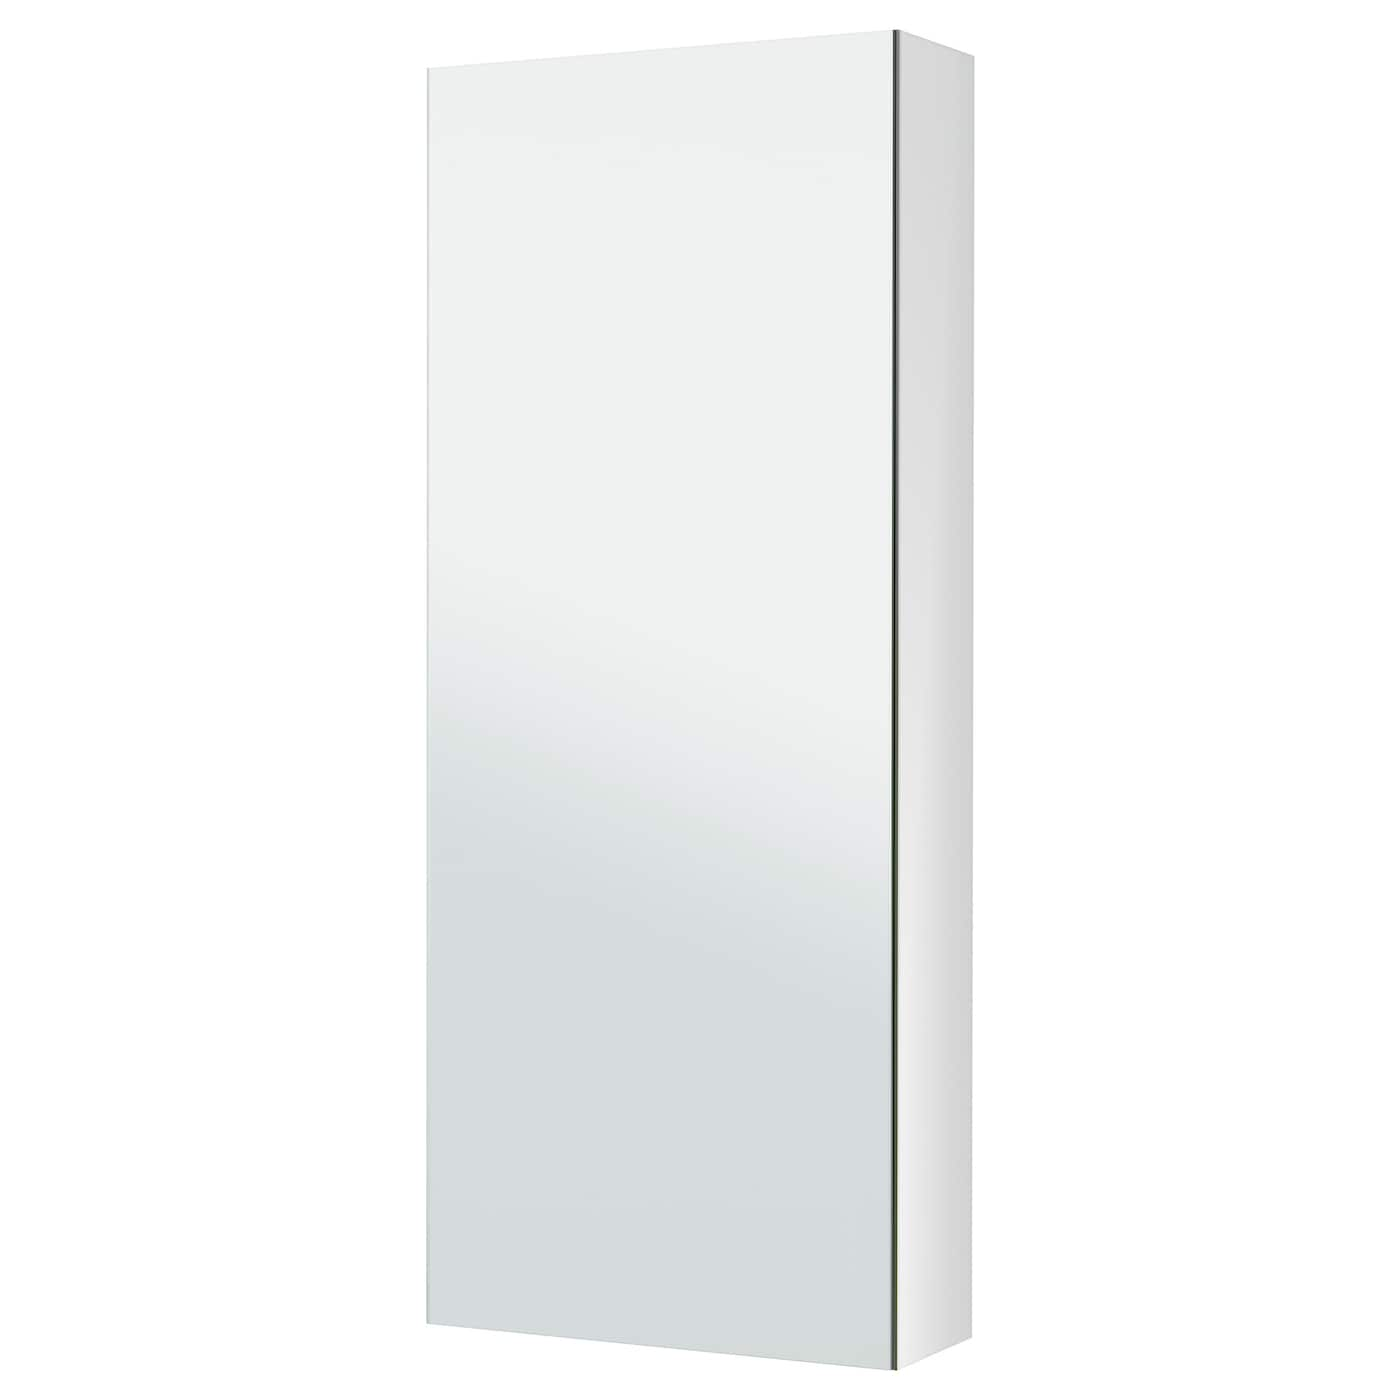 IKEA GODMORGON mirror cabinet with 1 door Mirror both on the outside and the inside.